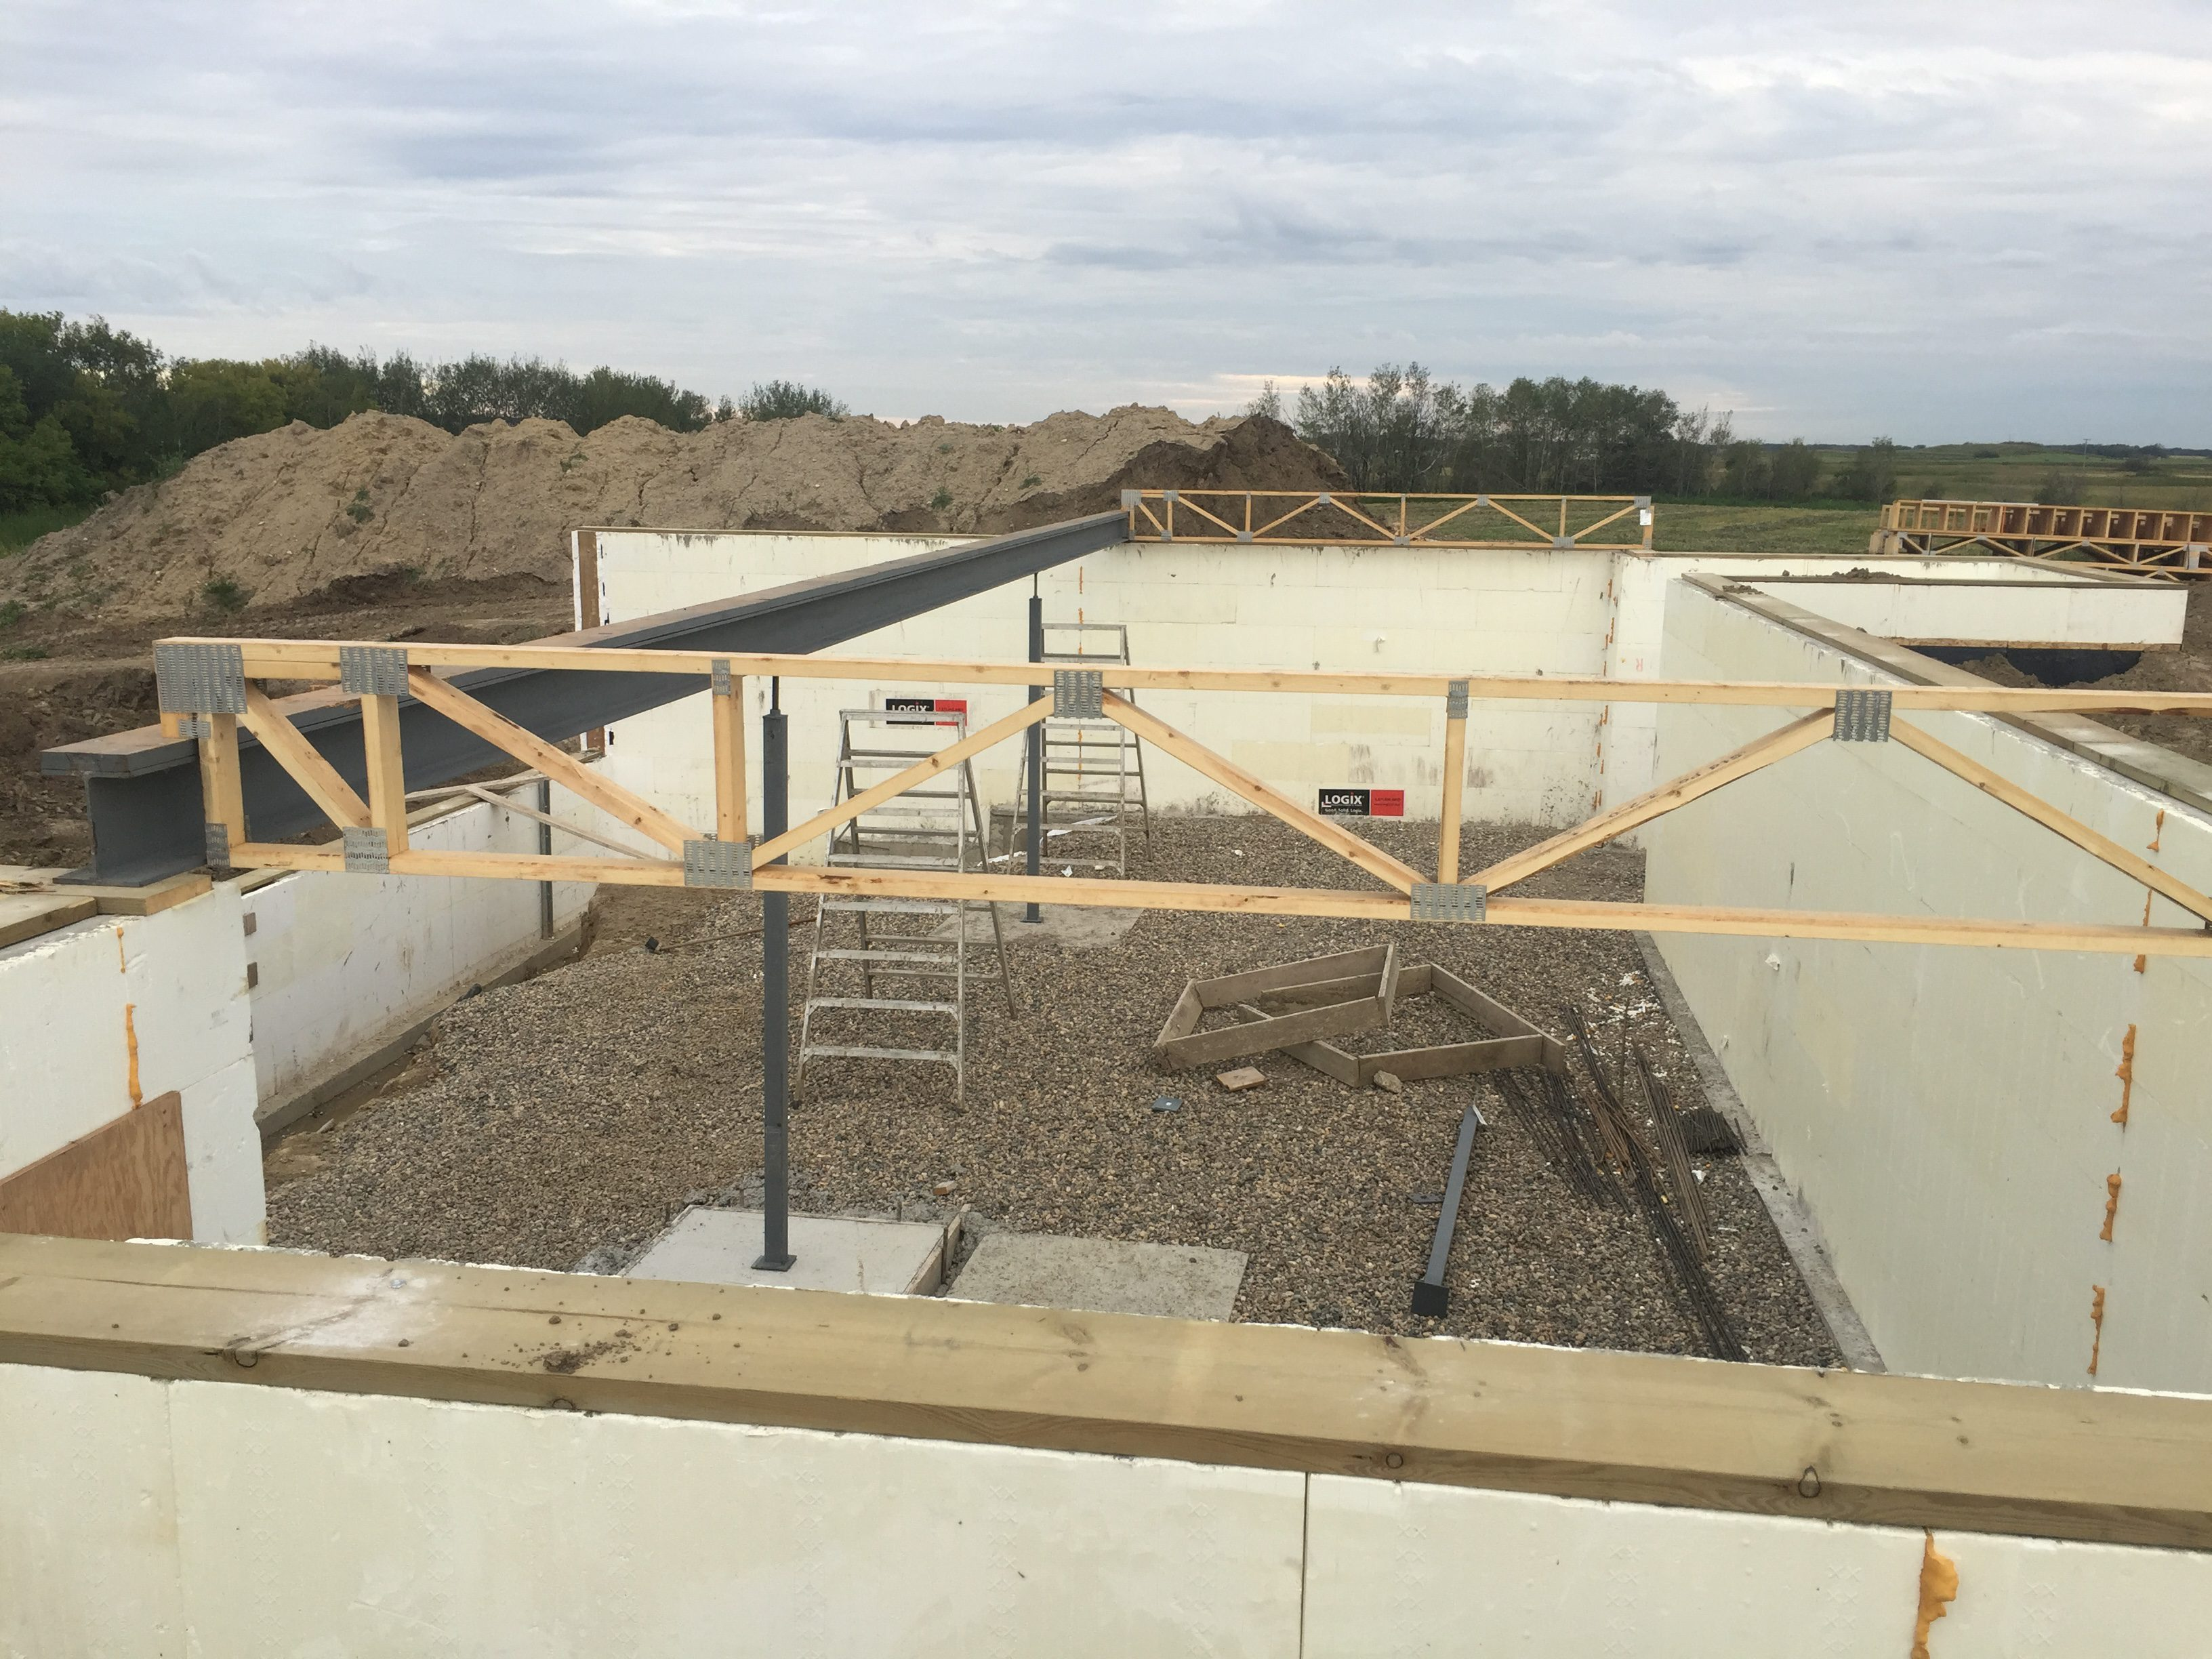 Basement Construction of and Upcoming Home on Lot 6